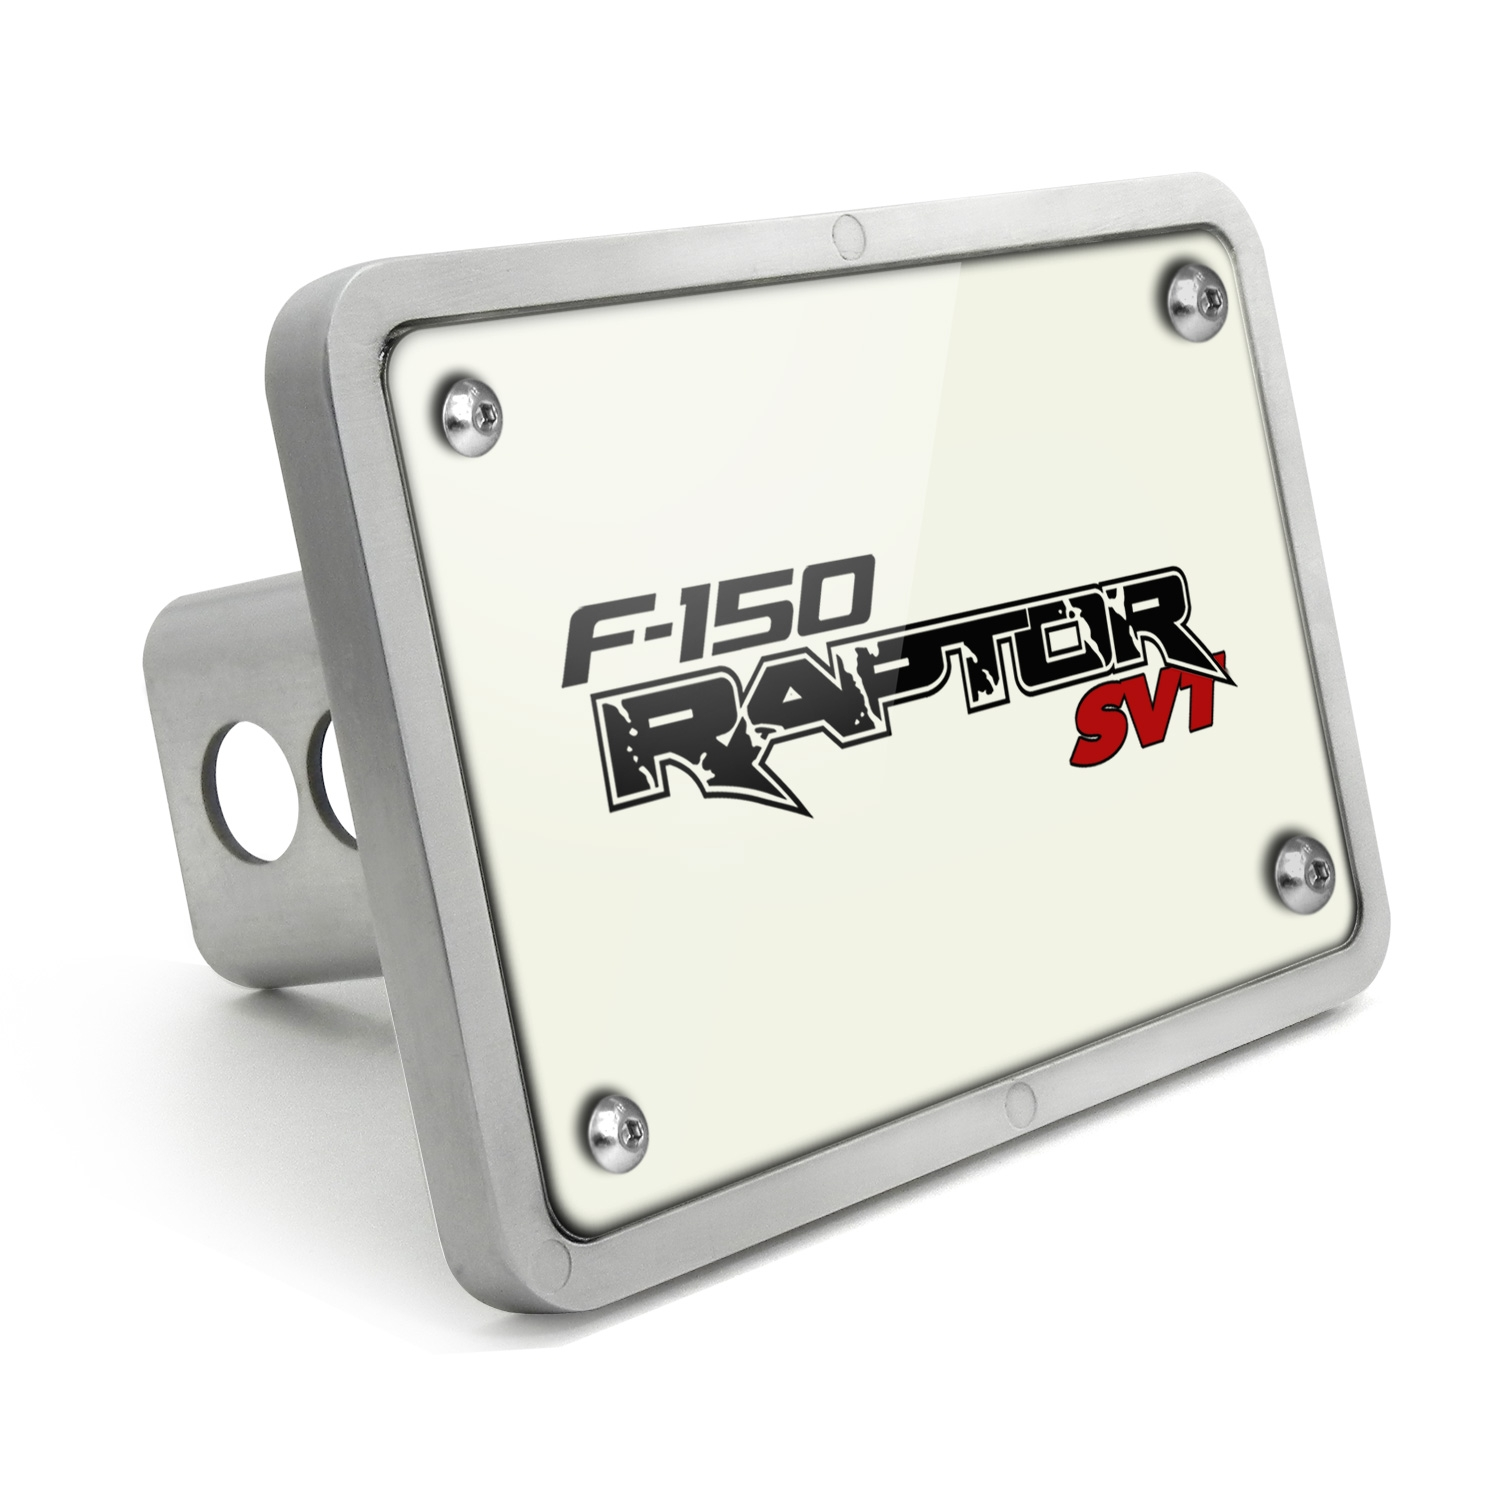 Ford Raptor SVT UV Graphic White Plate Billet Aluminum 2 inch Tow Hitch Cover